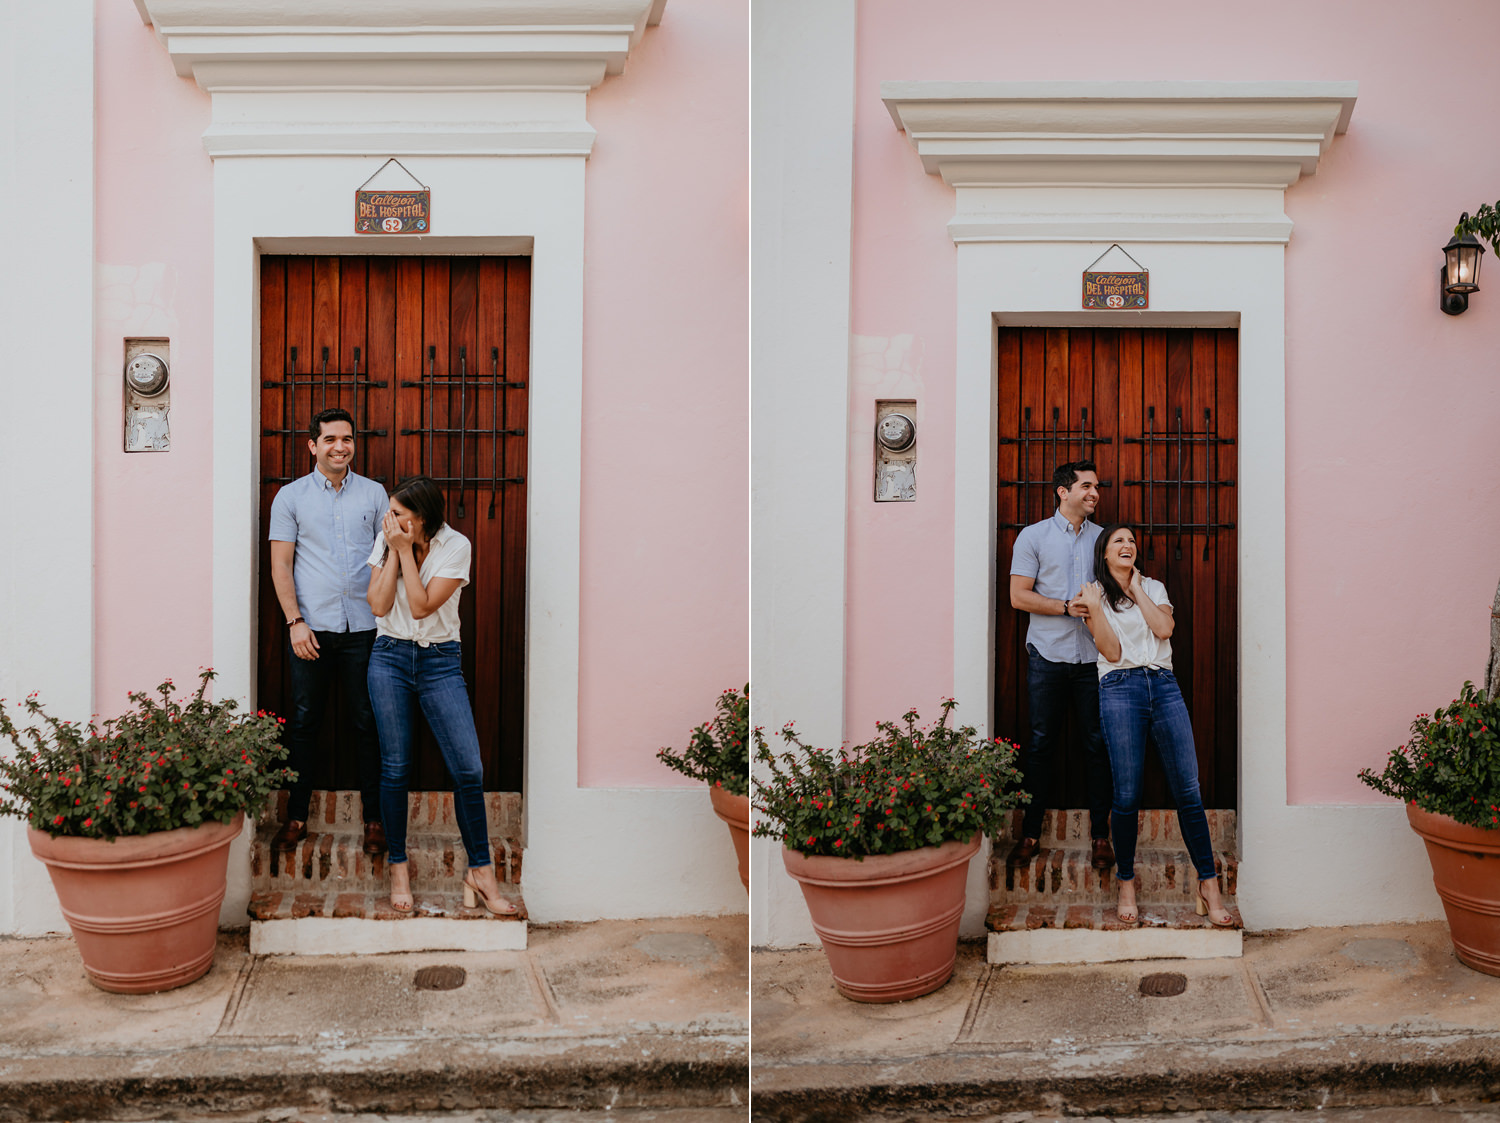 couple smiling and laughing standing in front of wooden door and pink house